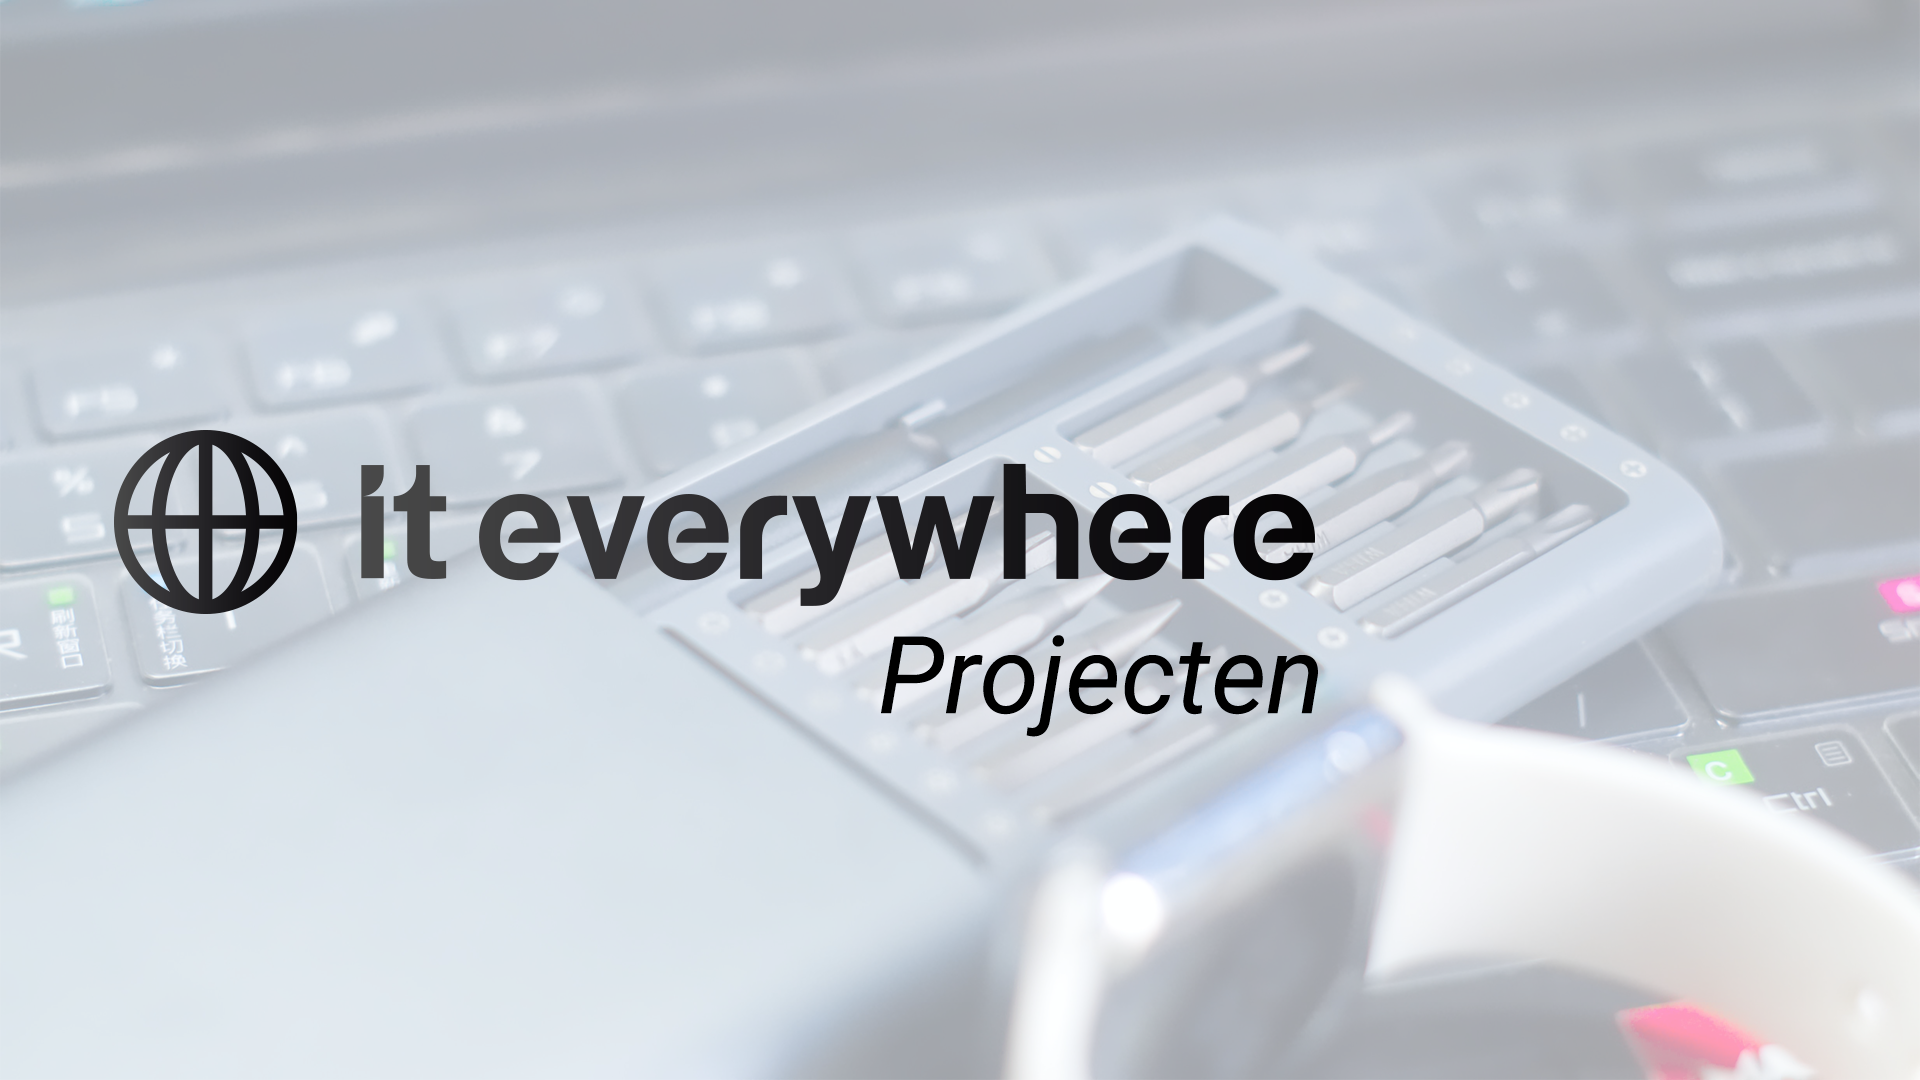 IT-Everywhere Projecten